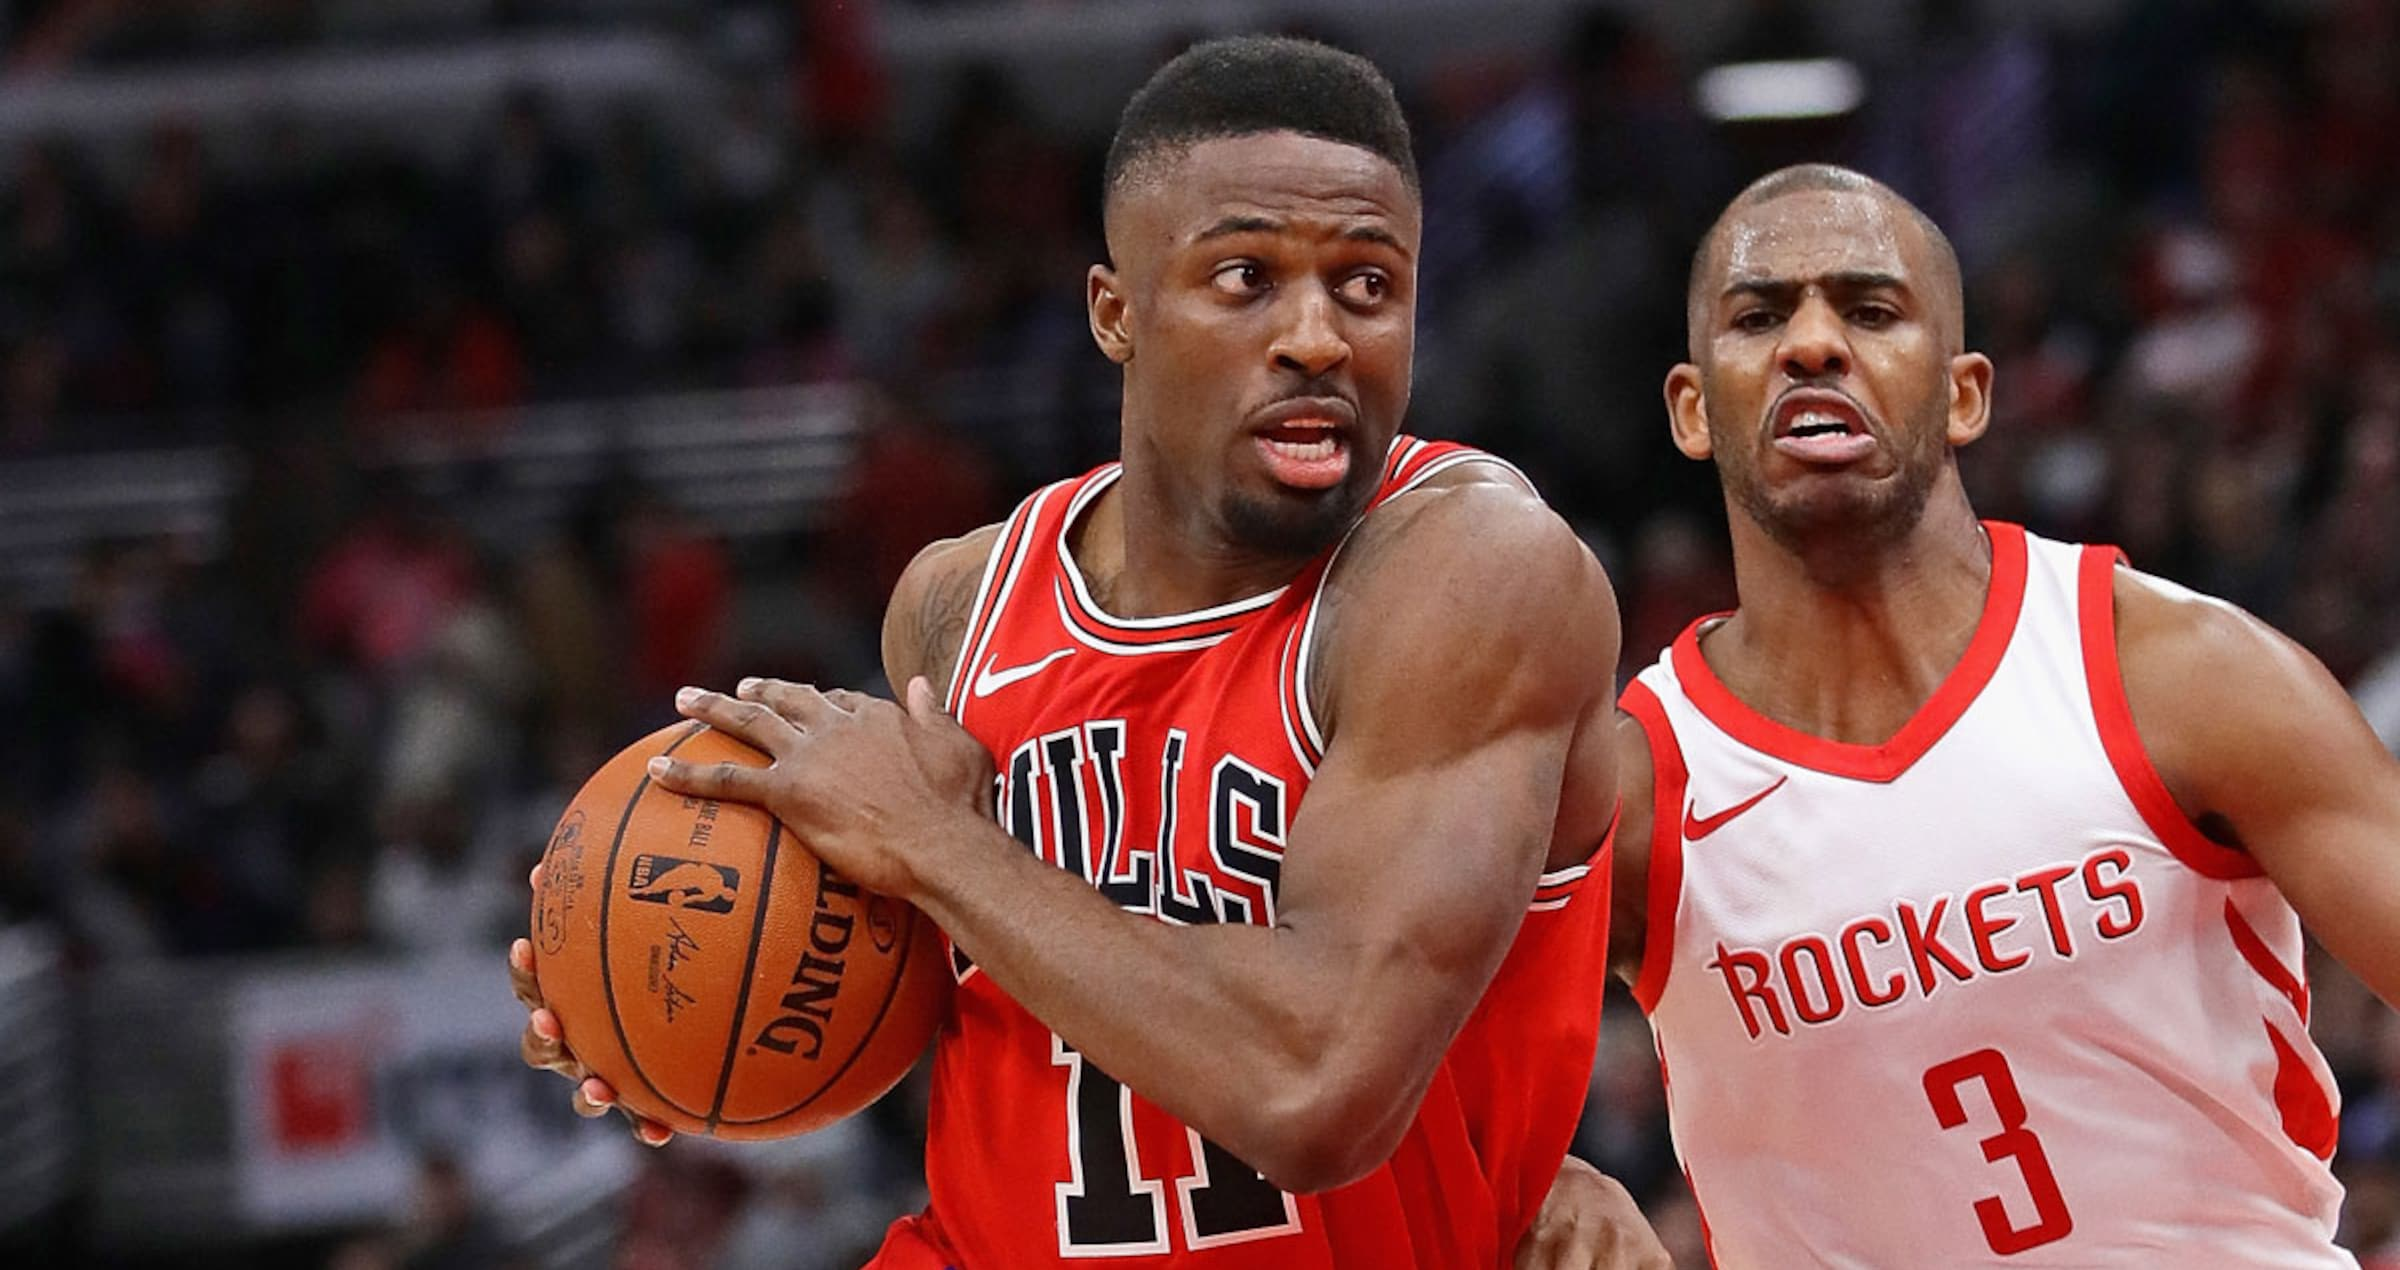 David Nwaba #11 of the Chicago Bulls drives to the basket against the Houston Rockets